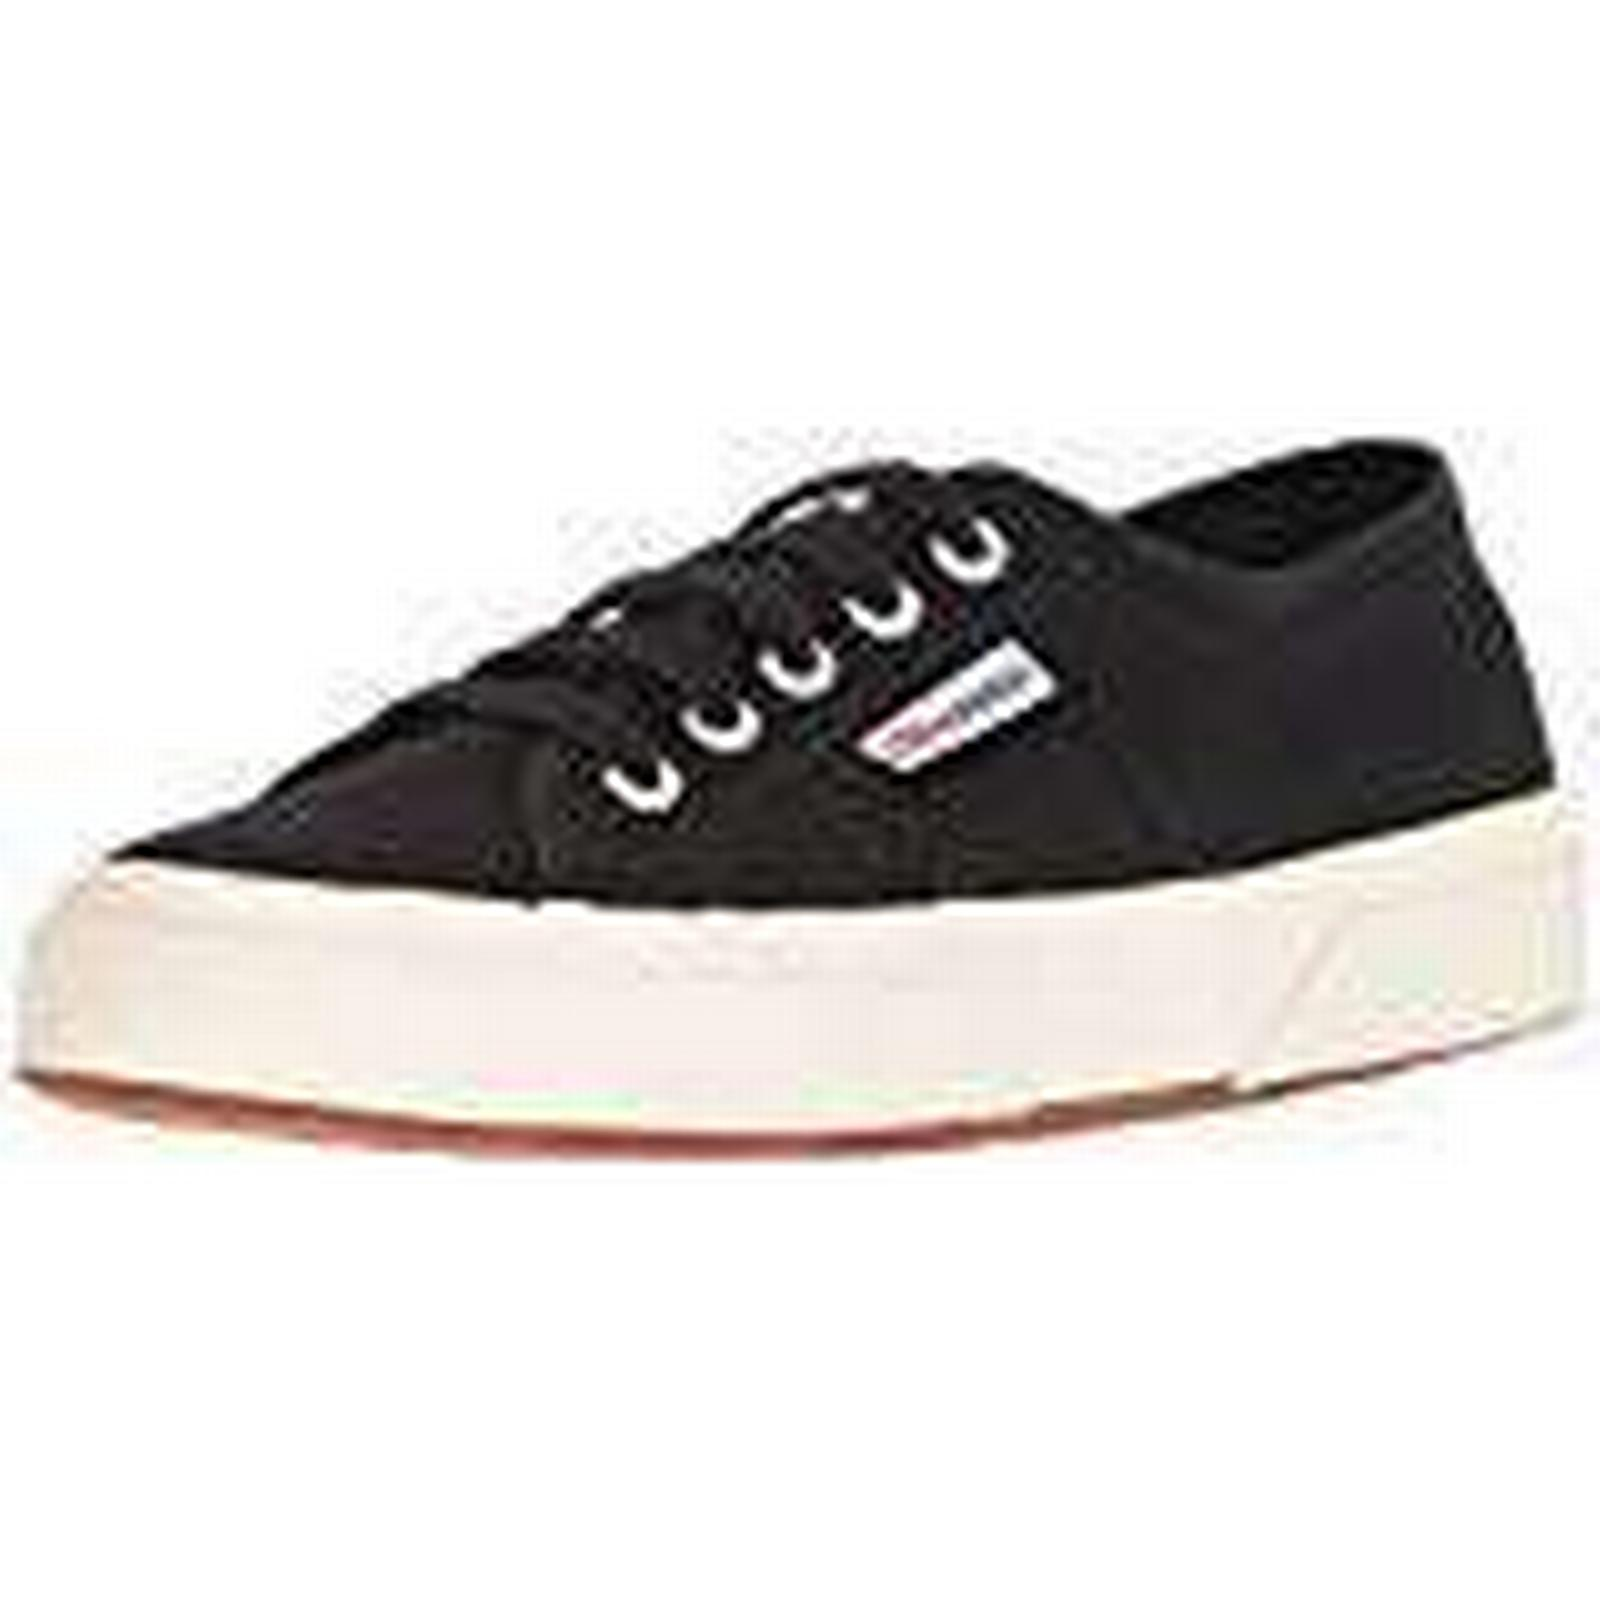 Superga 2750 6.5 Cotu Classic, Unisex Adults' Low-Top Sneakers, Black, 6.5 2750 UK (40 EU) fc5806